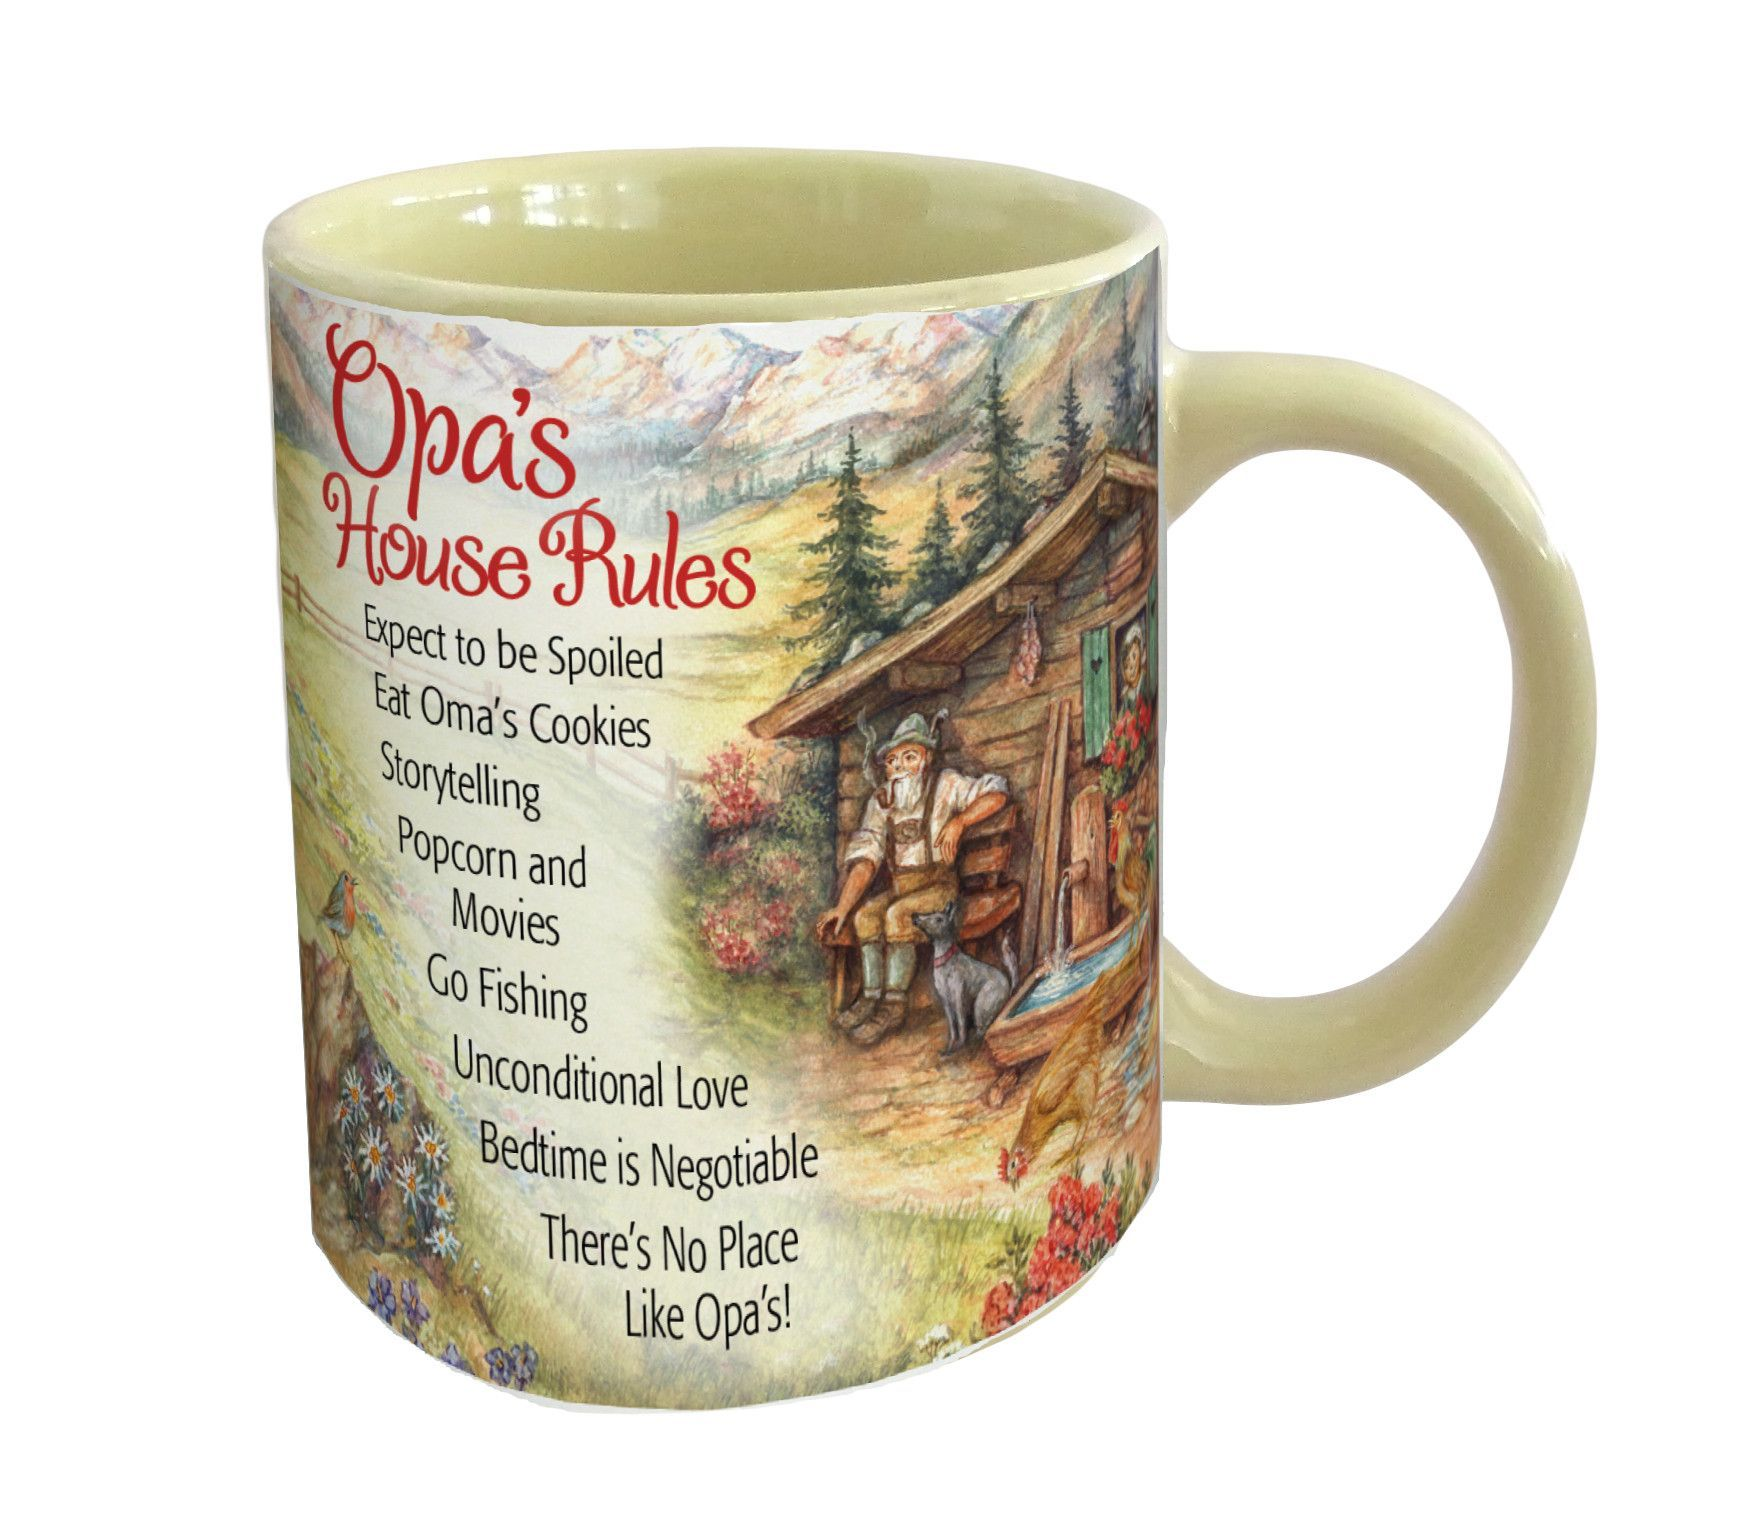 Opa House Rules Ceramic Coffee Mug This Unique Combines Por European Themes Into A Cup The Volume Of Is